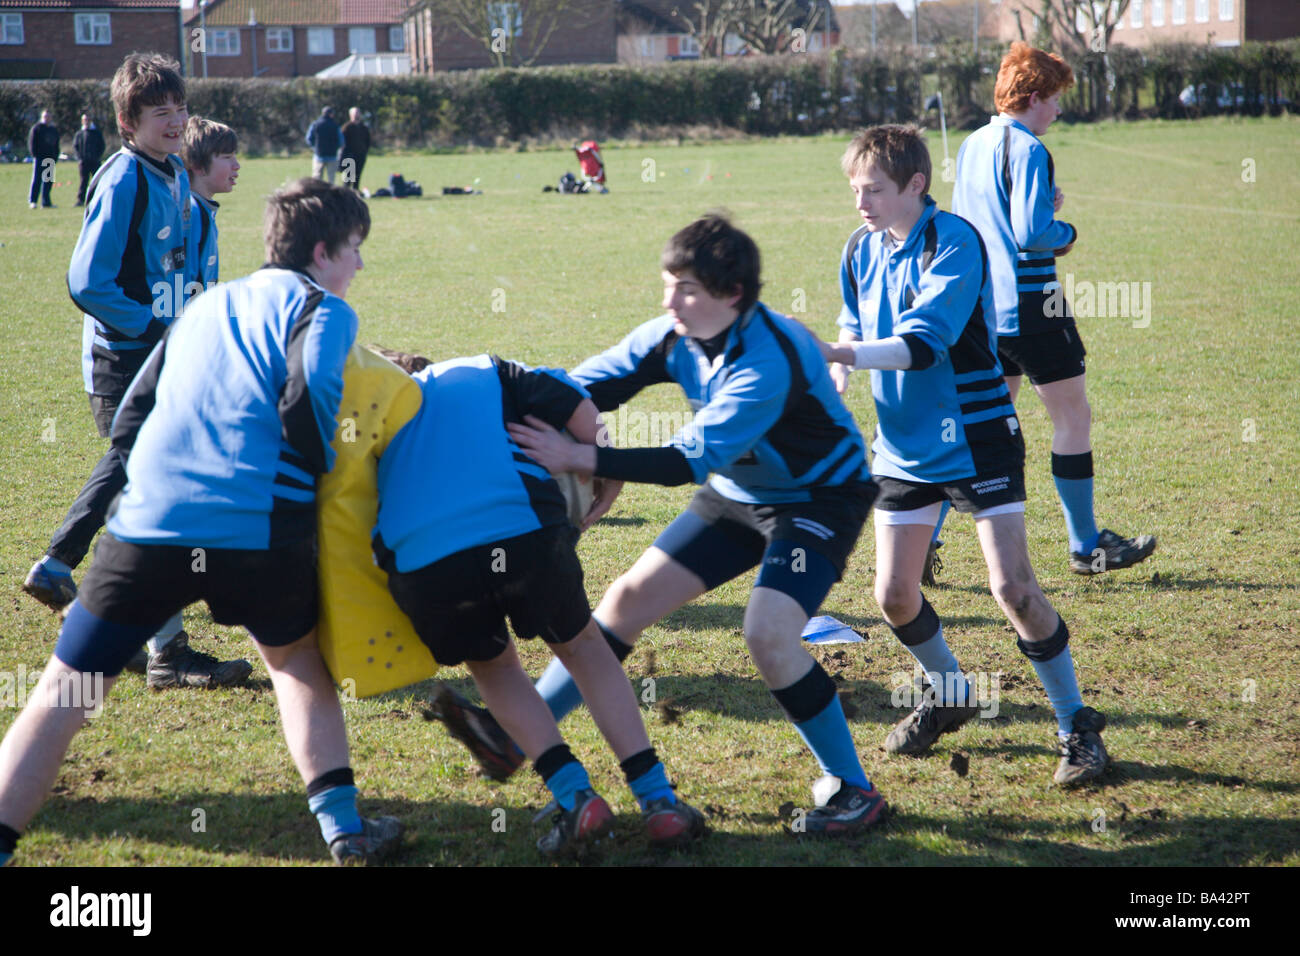 Formation de rugby Photo Stock